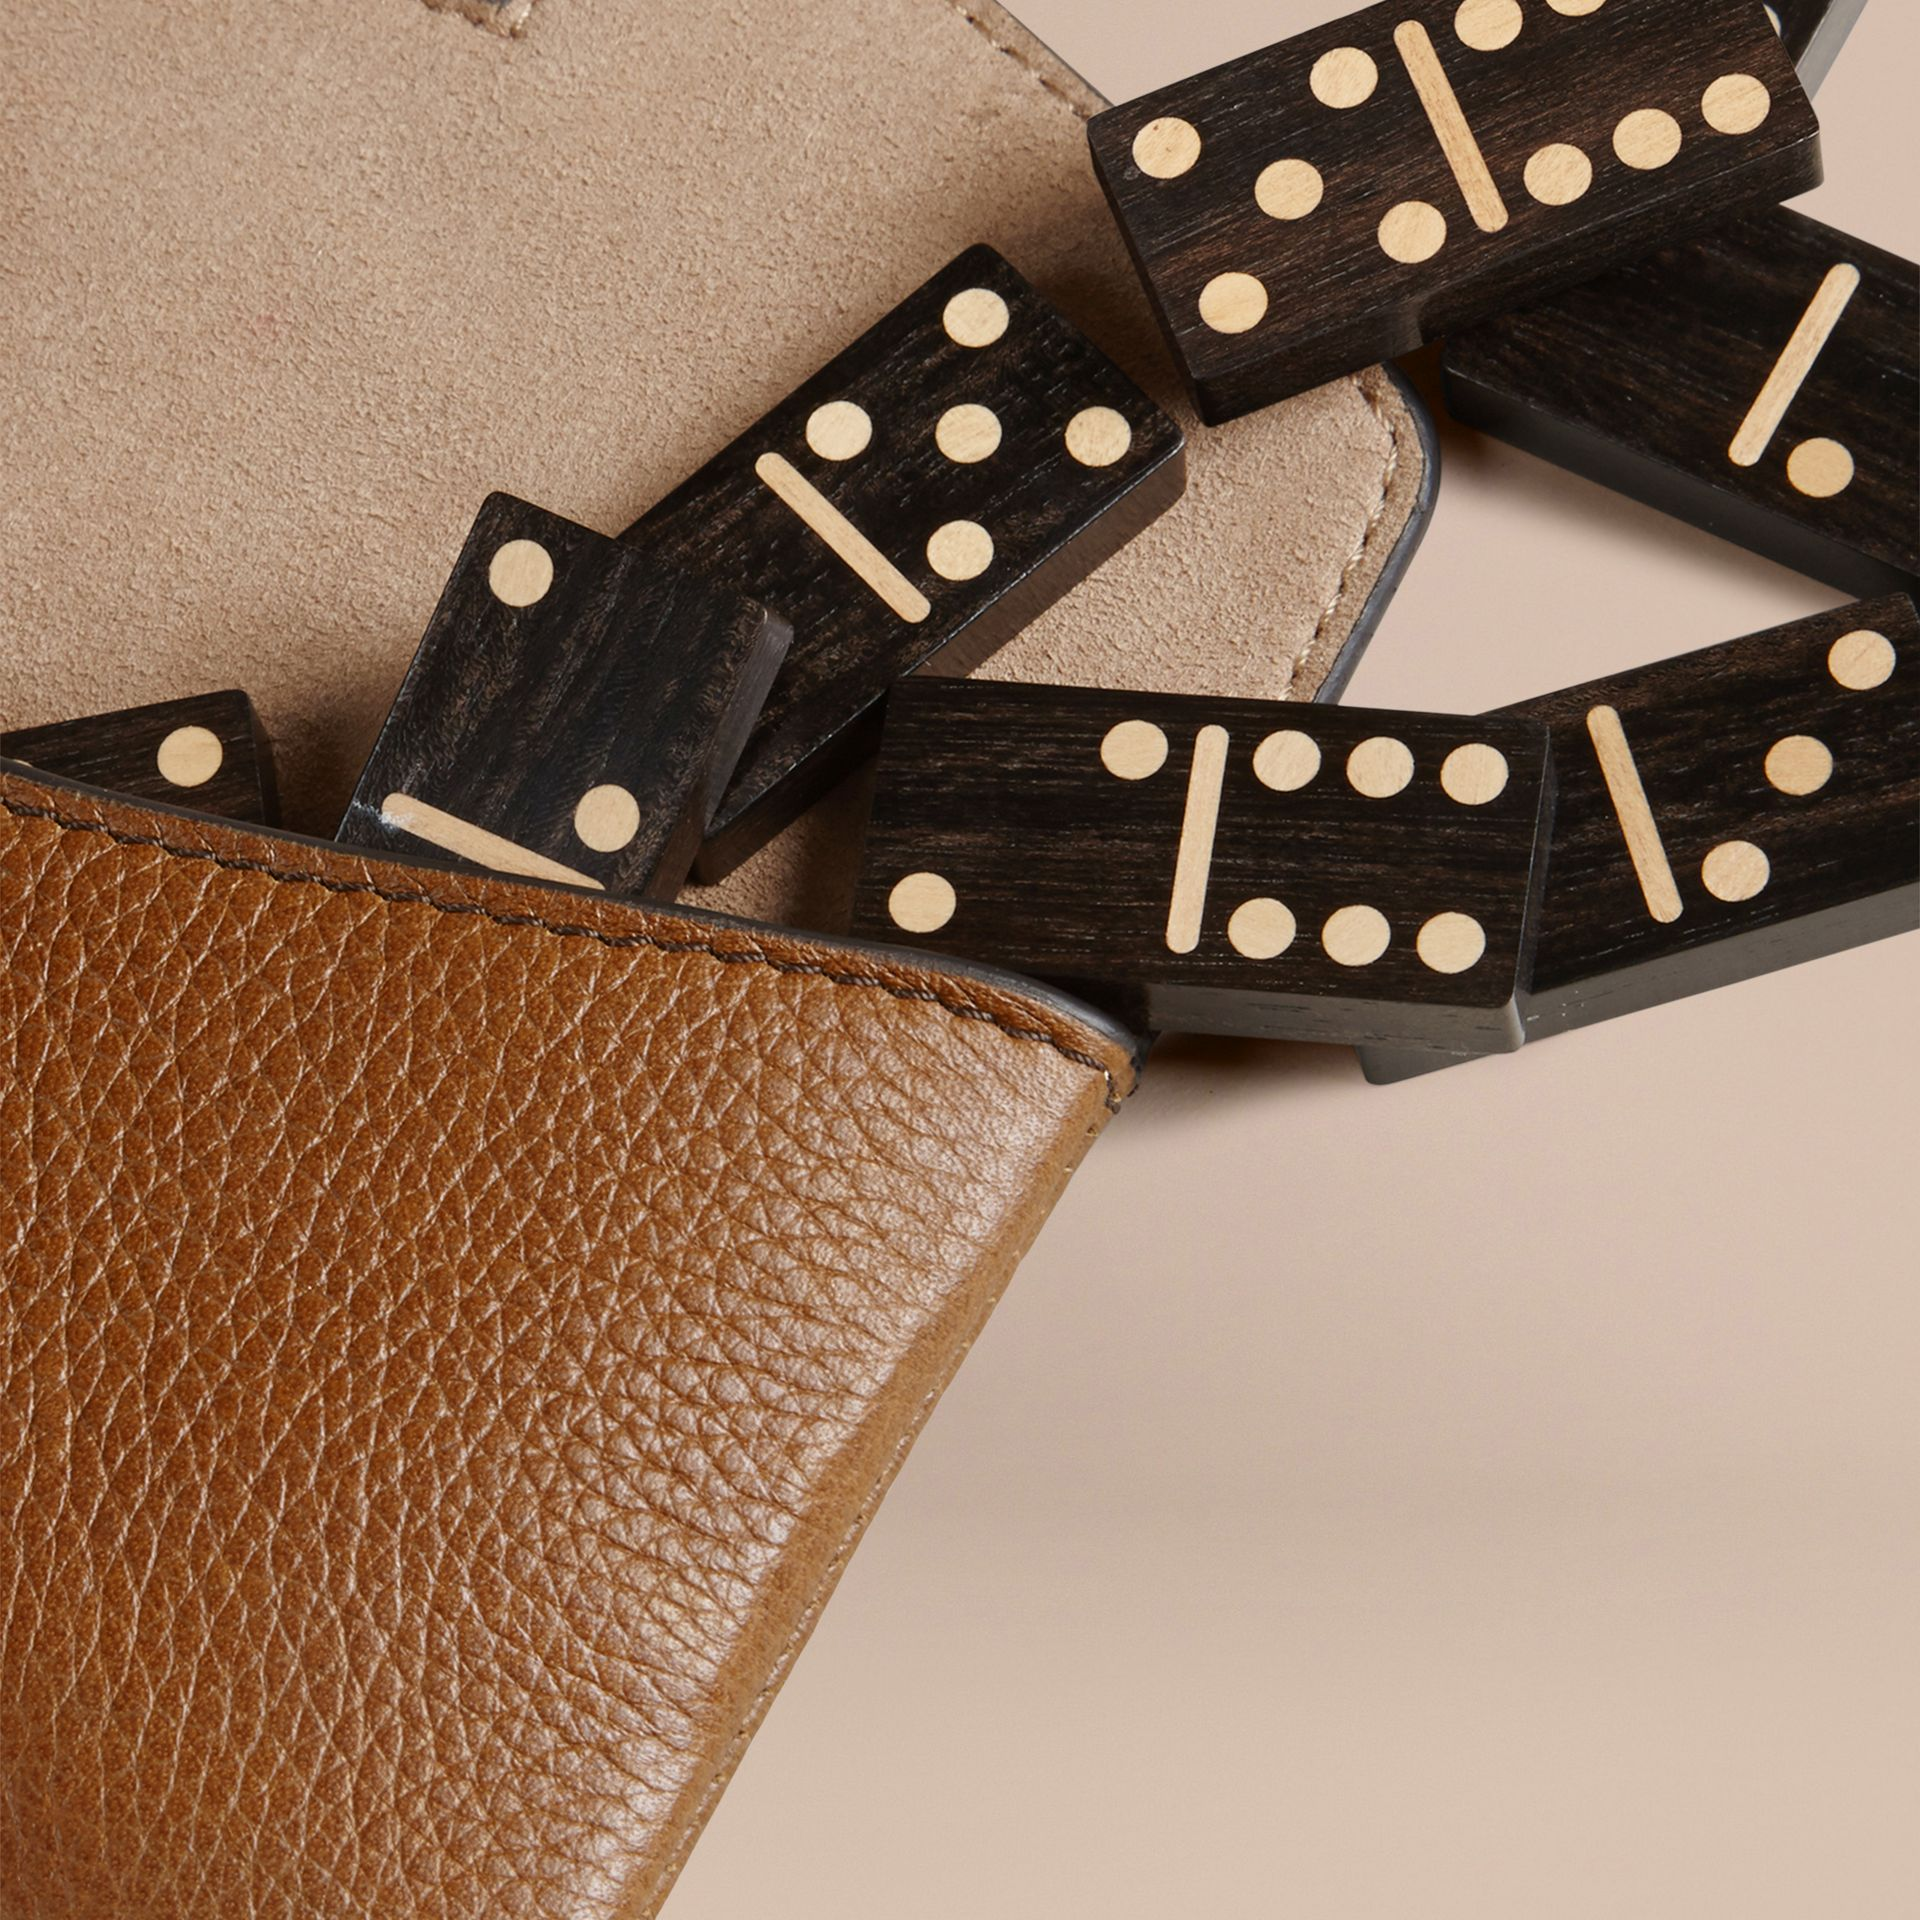 Wooden Domino Set with Grainy Leather Case Tan - gallery image 2